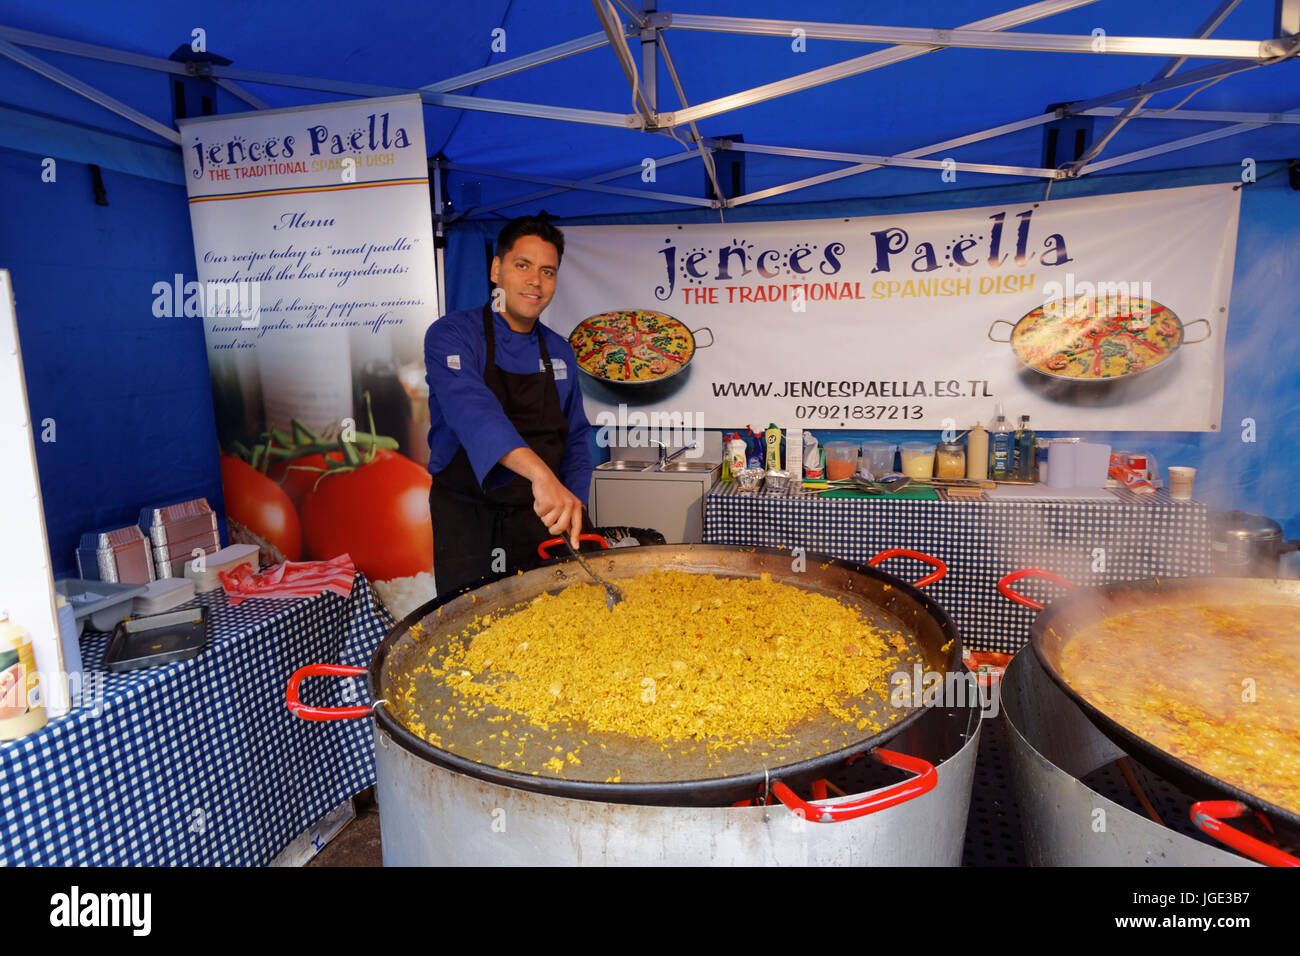 Jences Paella Catering street food paella market stall food festival Glasgow Scotland Glasgow Christmas market - Stock Image